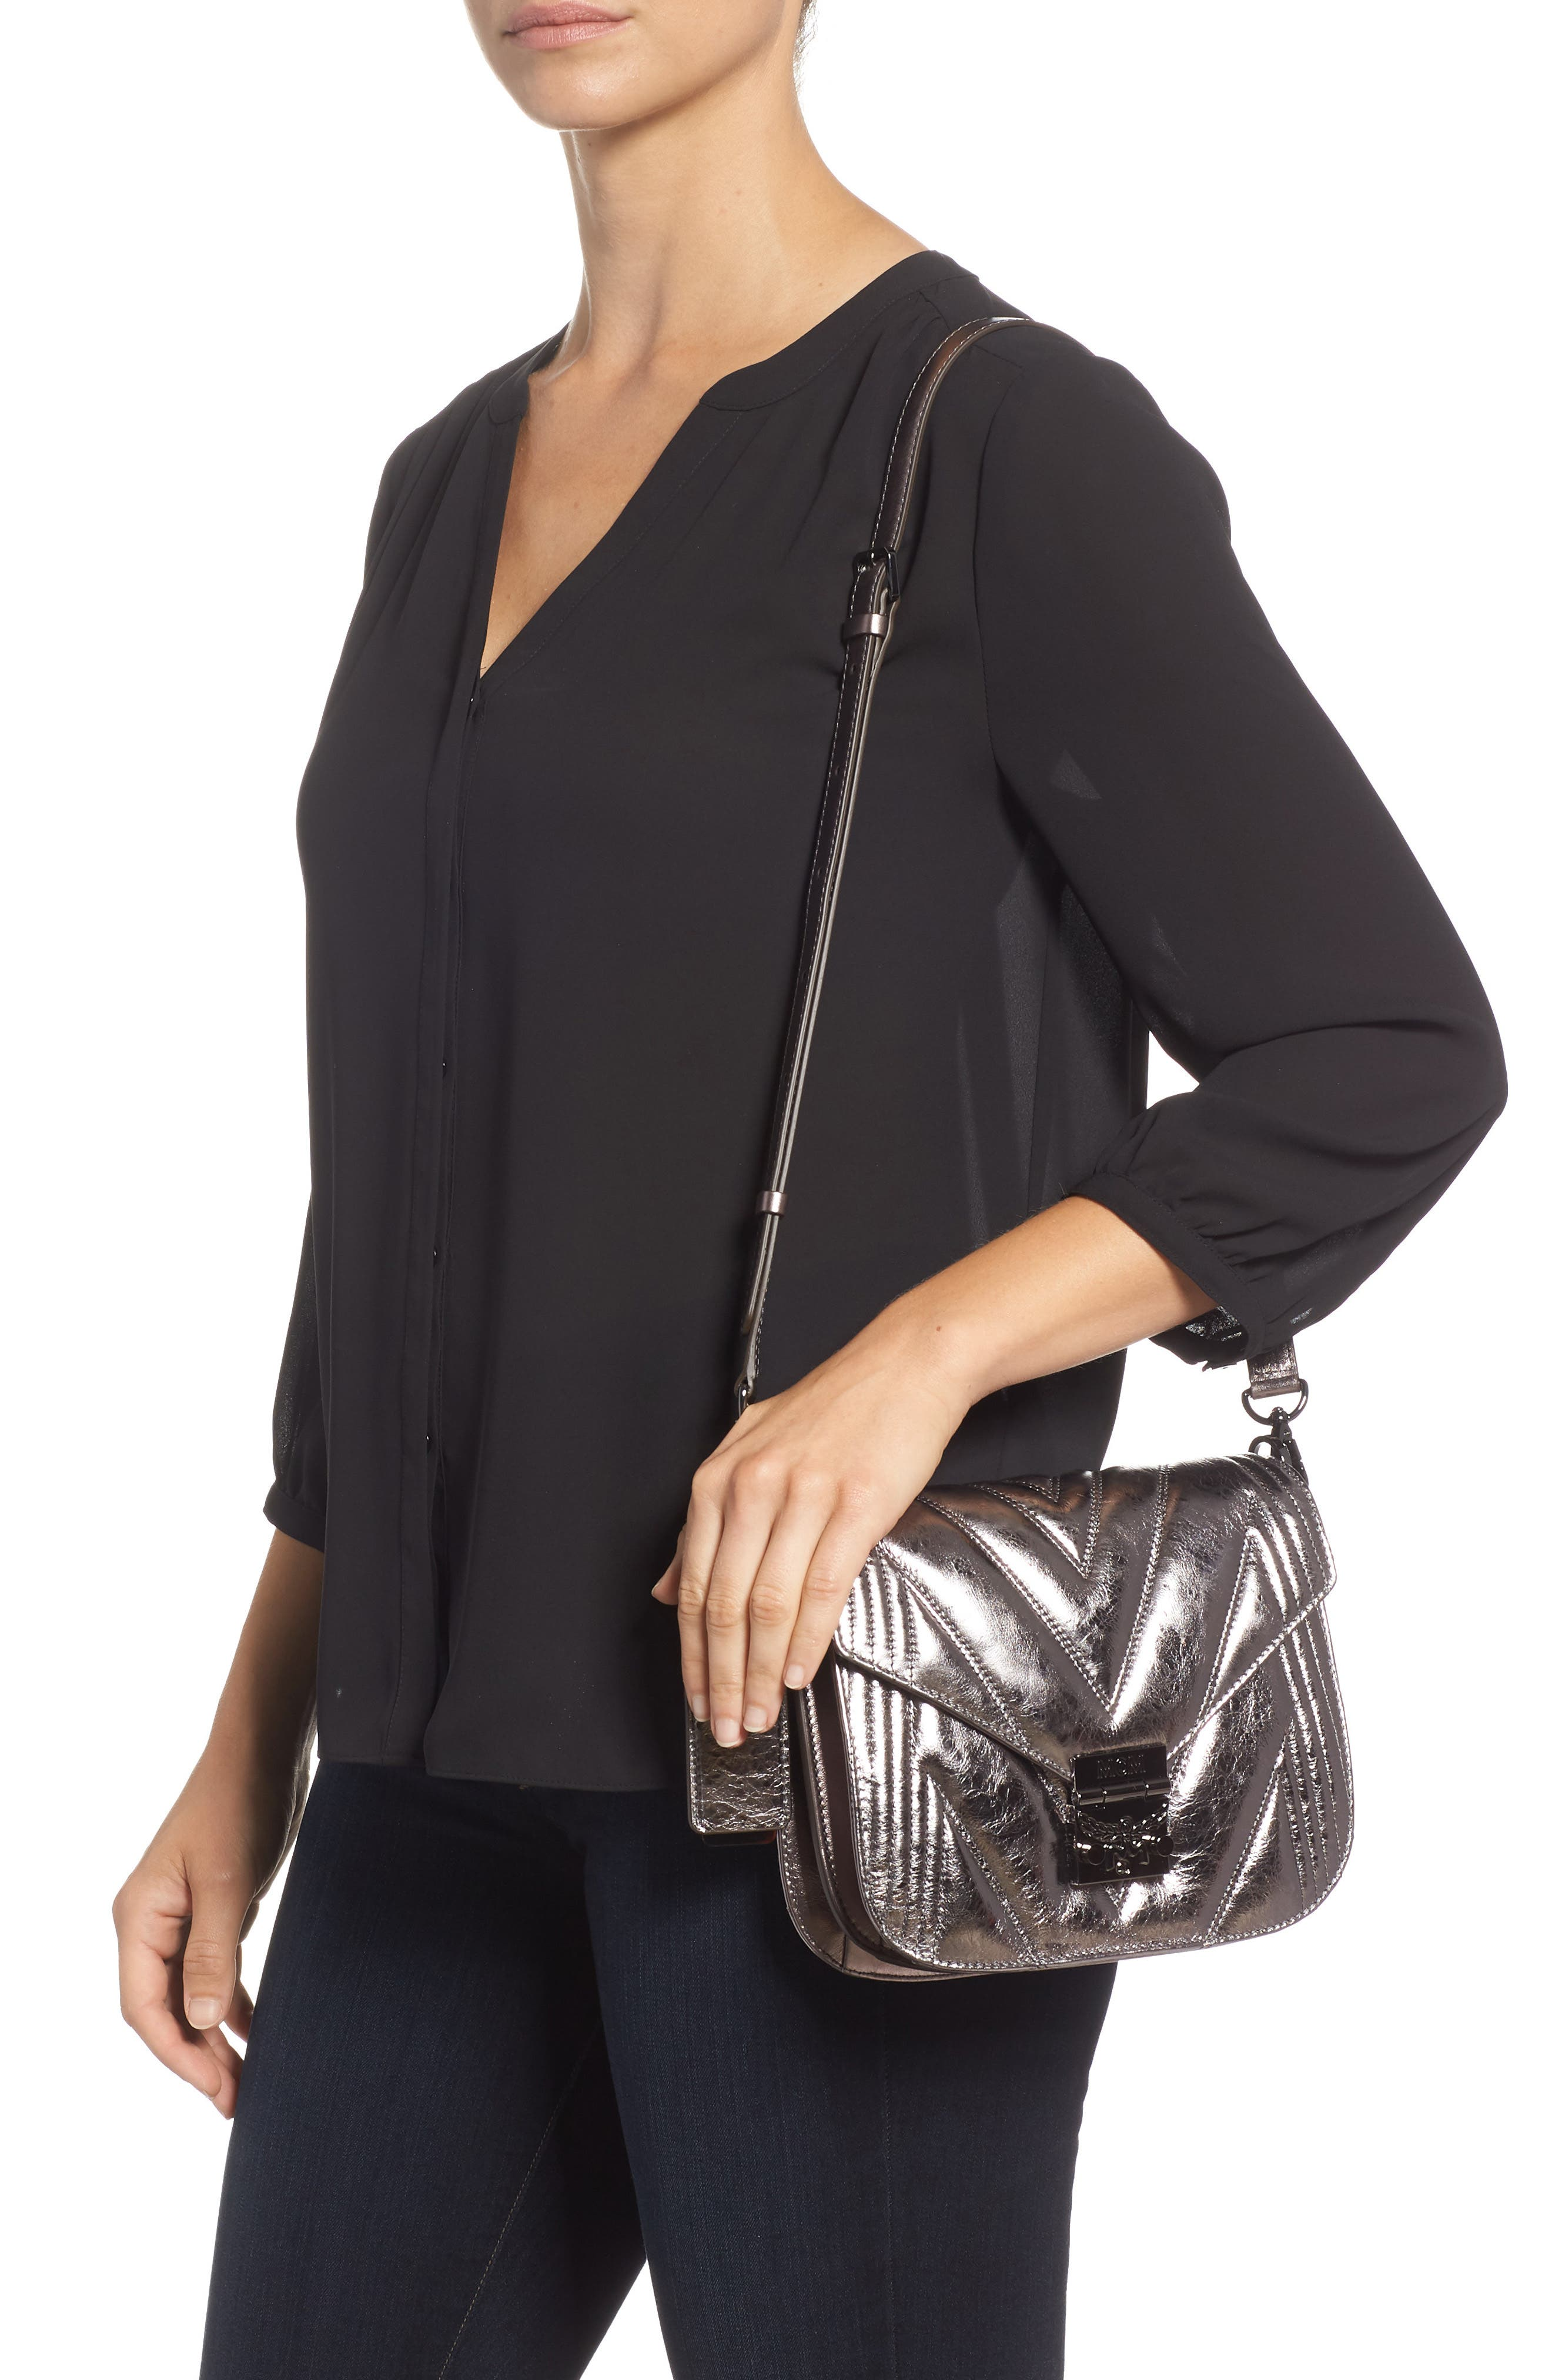 Patricia Quilted Metallic Leather Saddle Bag,                             Alternate thumbnail 2, color,                             040